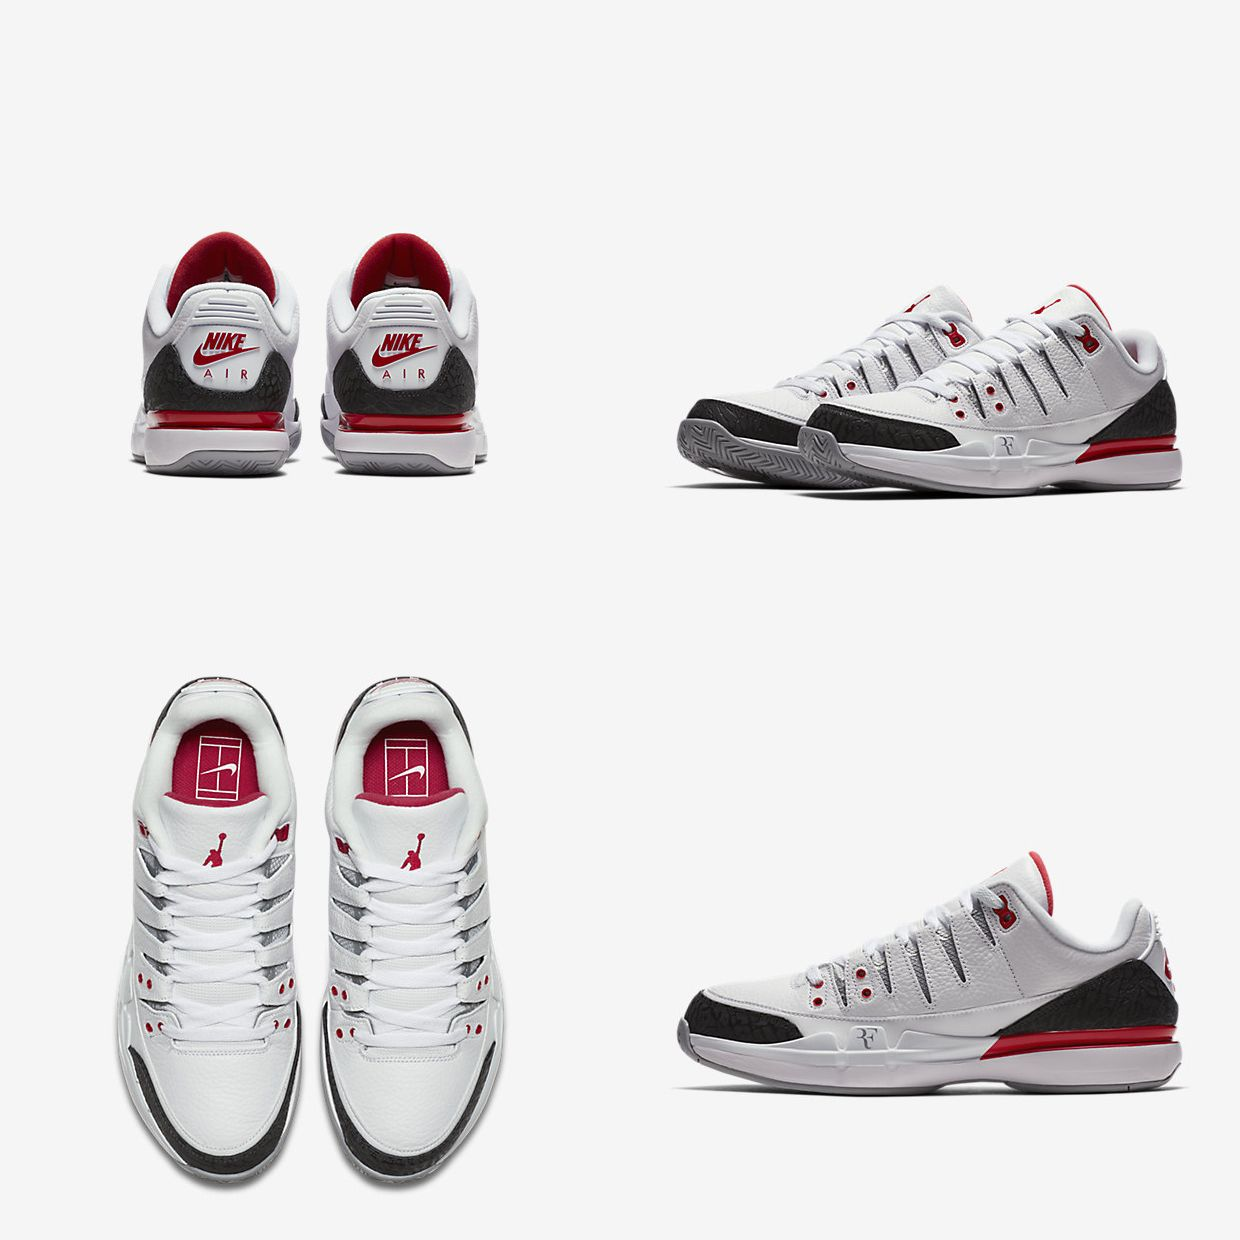 c9fc22359664 Tennis Fashion · Nike Zoom · Roger Federer · Michael Jordan · Two GOATs  come together in one shoe as Nike releases the 3rd iteration of the Nike